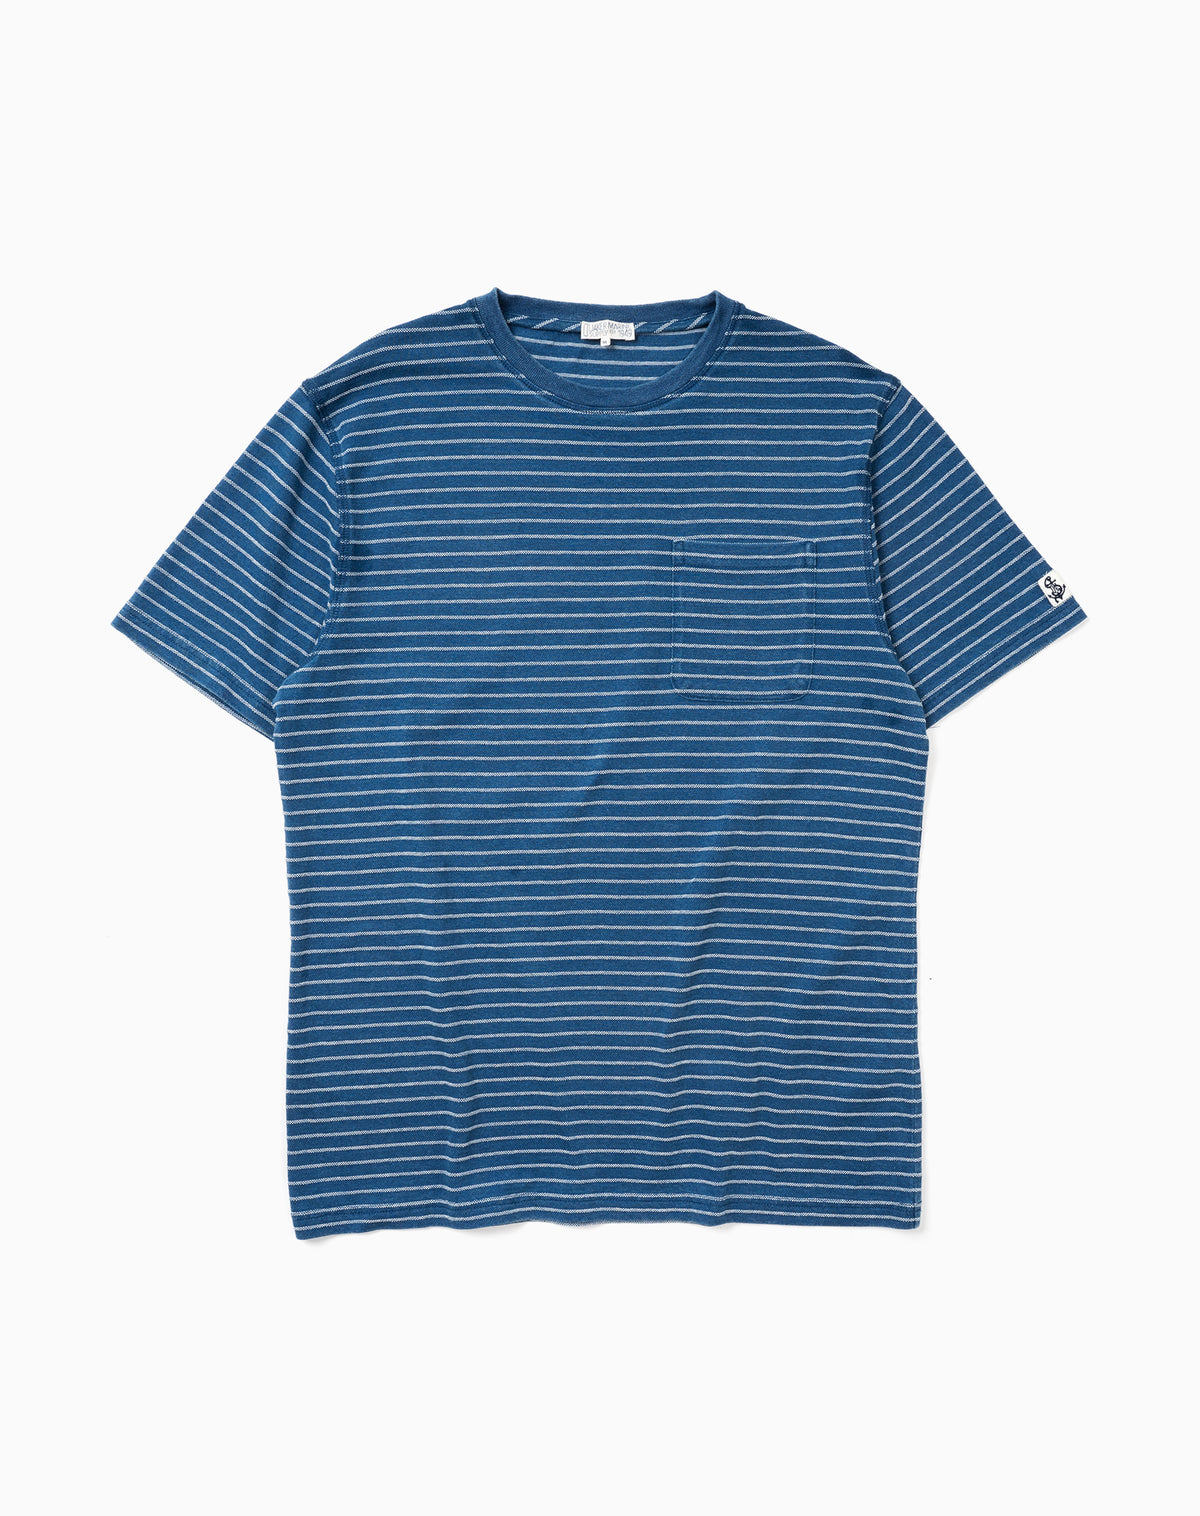 Indigo Pocket Tee in Navy/White Jacquard Stripe